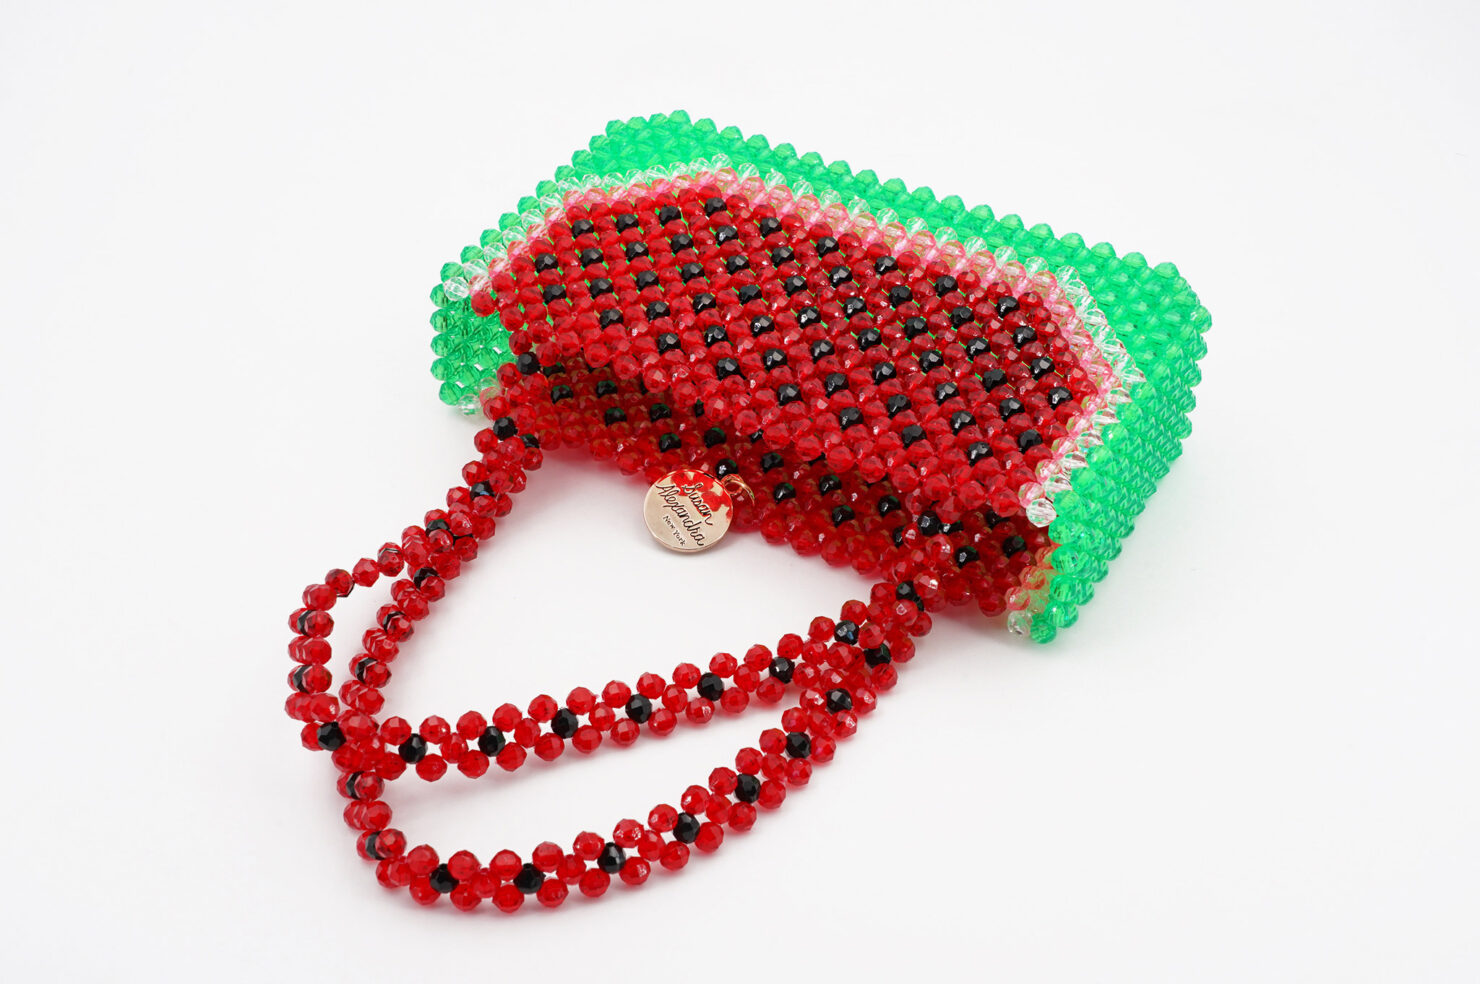 WATERMELLON BAG - SUSAN ALEXANDRA